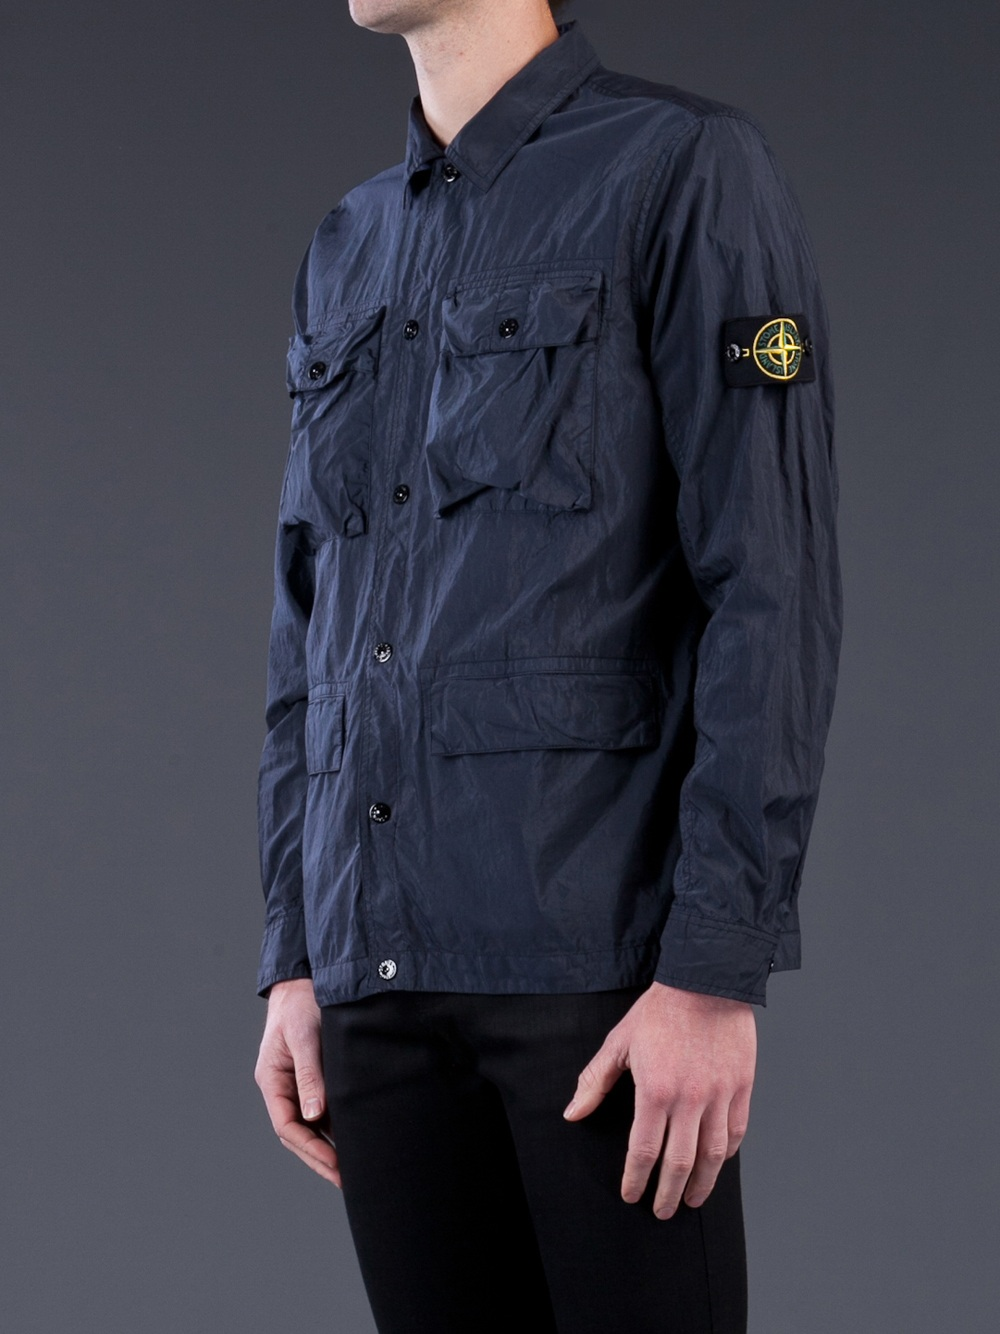 Stone Island Button Shirt In Blue For Men Lyst